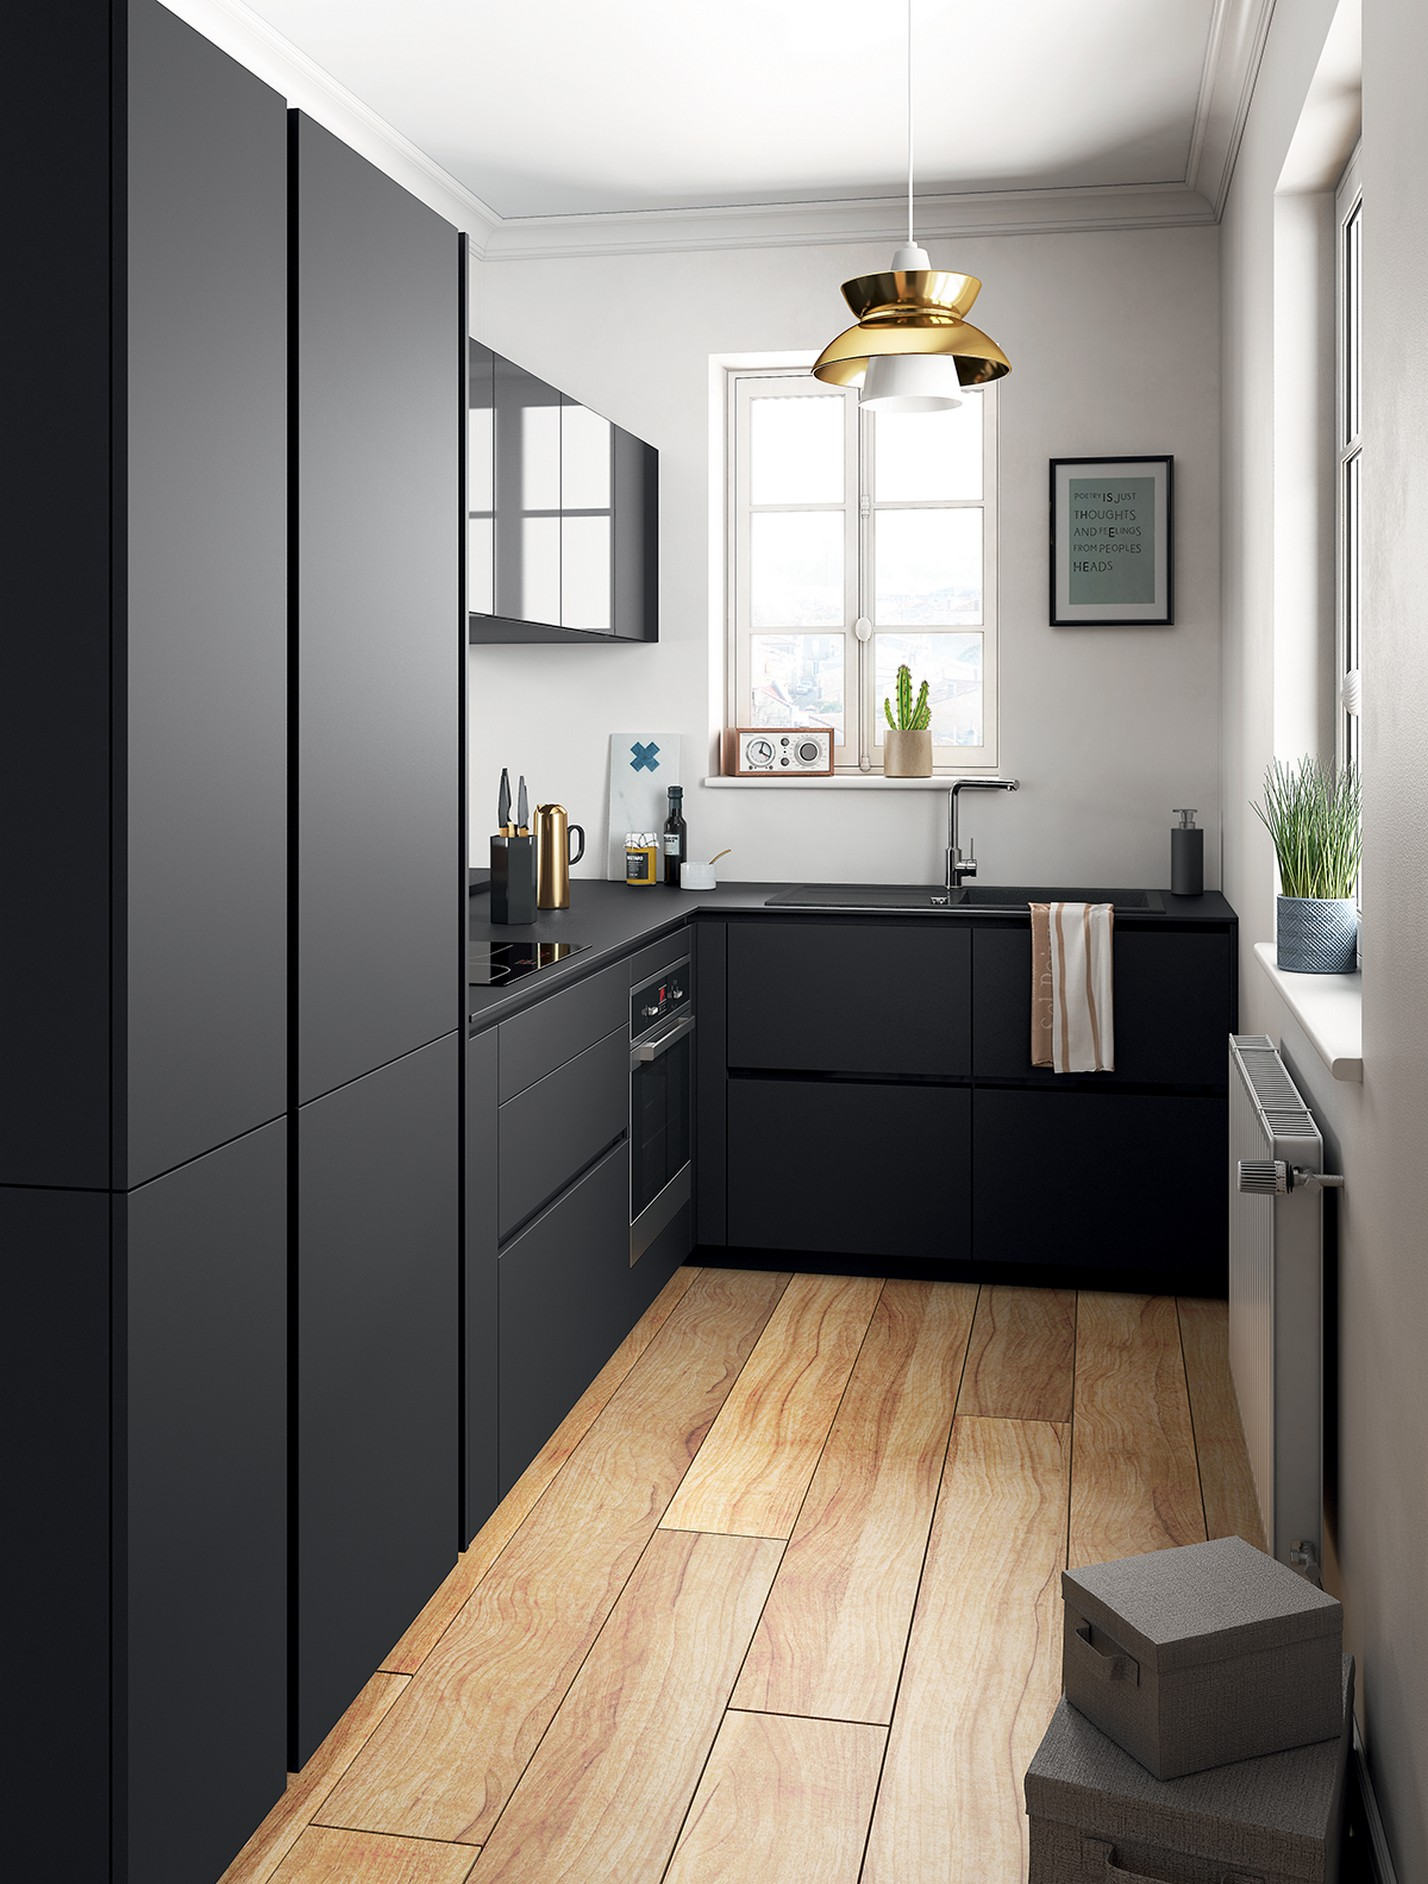 86 Some Small Kitchen Ideas To Help You Do Up Your Kitchen 24